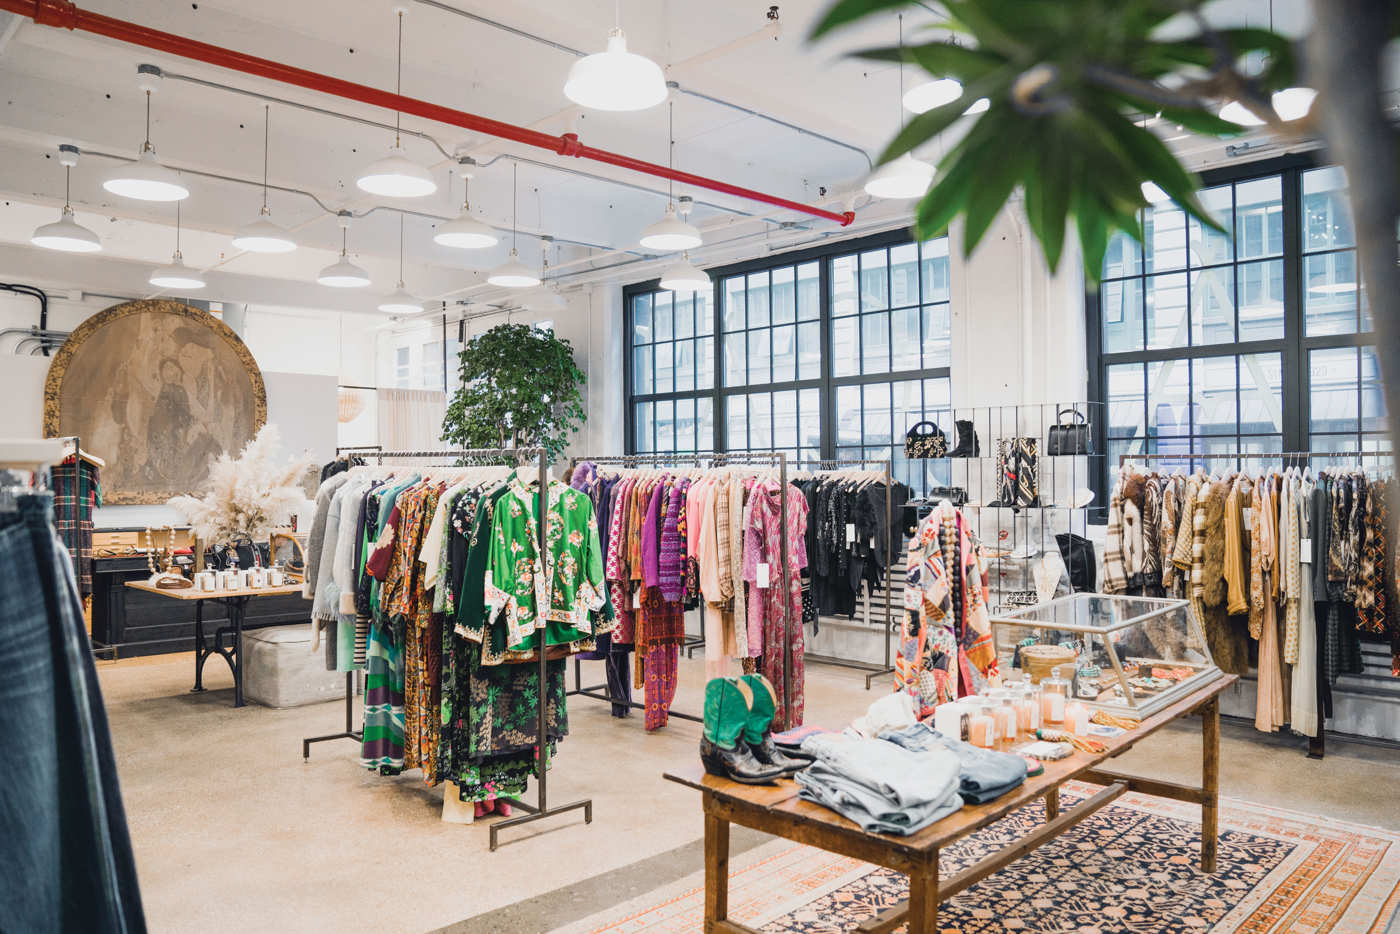 Shop Moto Salon The Best Of New York Shopping 2019